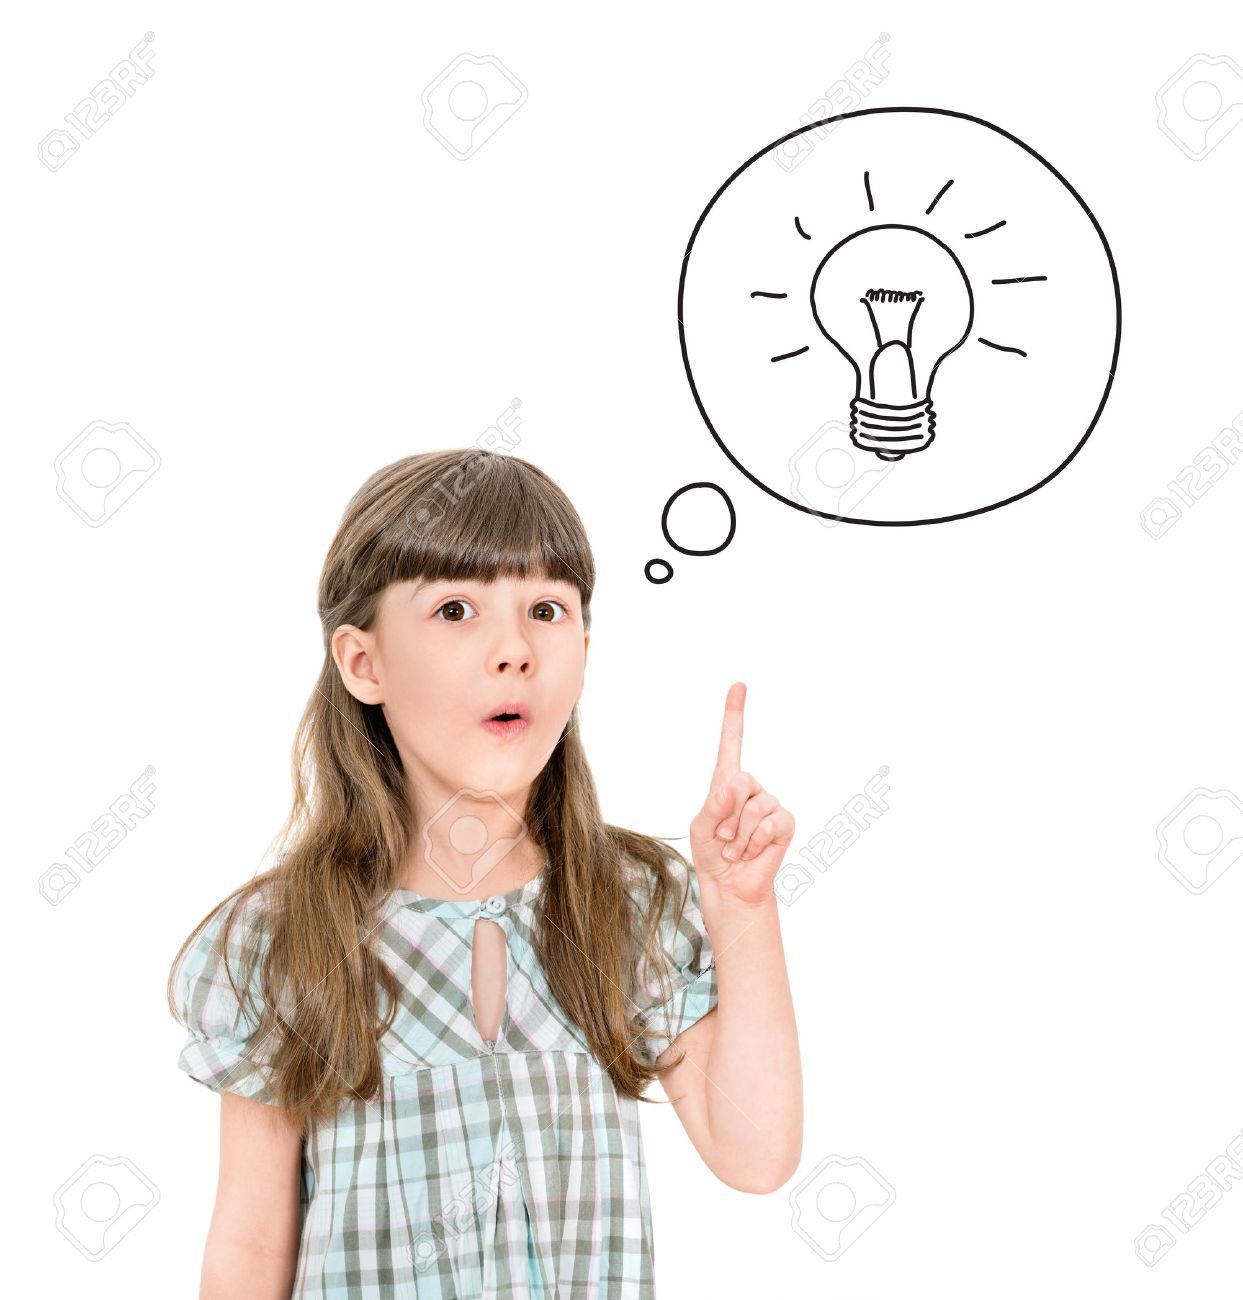 Clever little girl with a bright idea symbol pointing upwards with her finger to gain attention  Isolated on white Stock Photo - 18737649